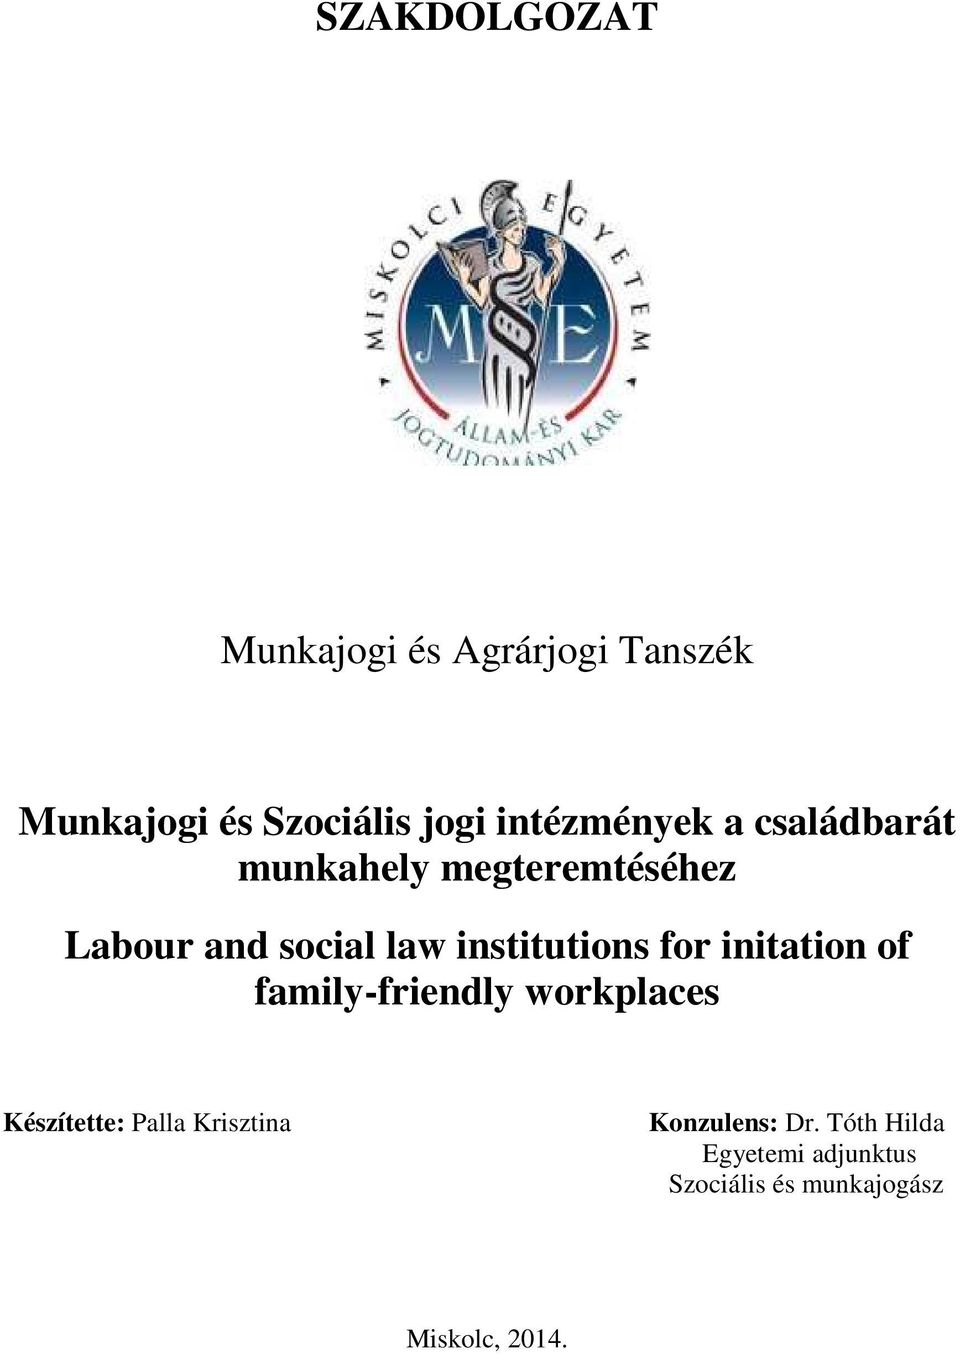 institutions for initation of family-friendly workplaces Készítette: Palla